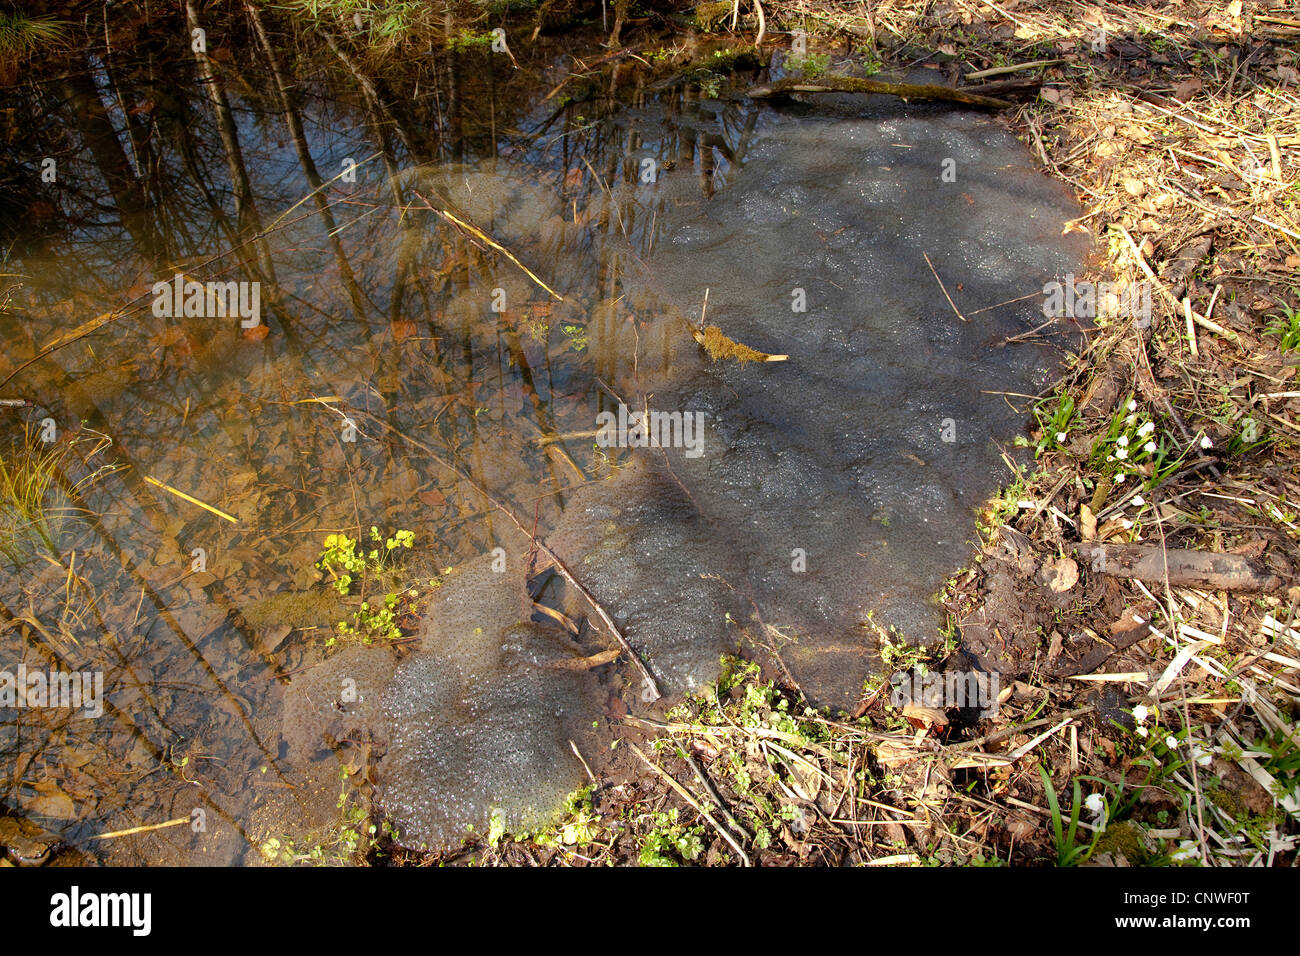 common frog, grass frog (Rana temporaria), ca. one hundred spawn clumps in the pond of a floodplain forest, Germany, - Stock Image